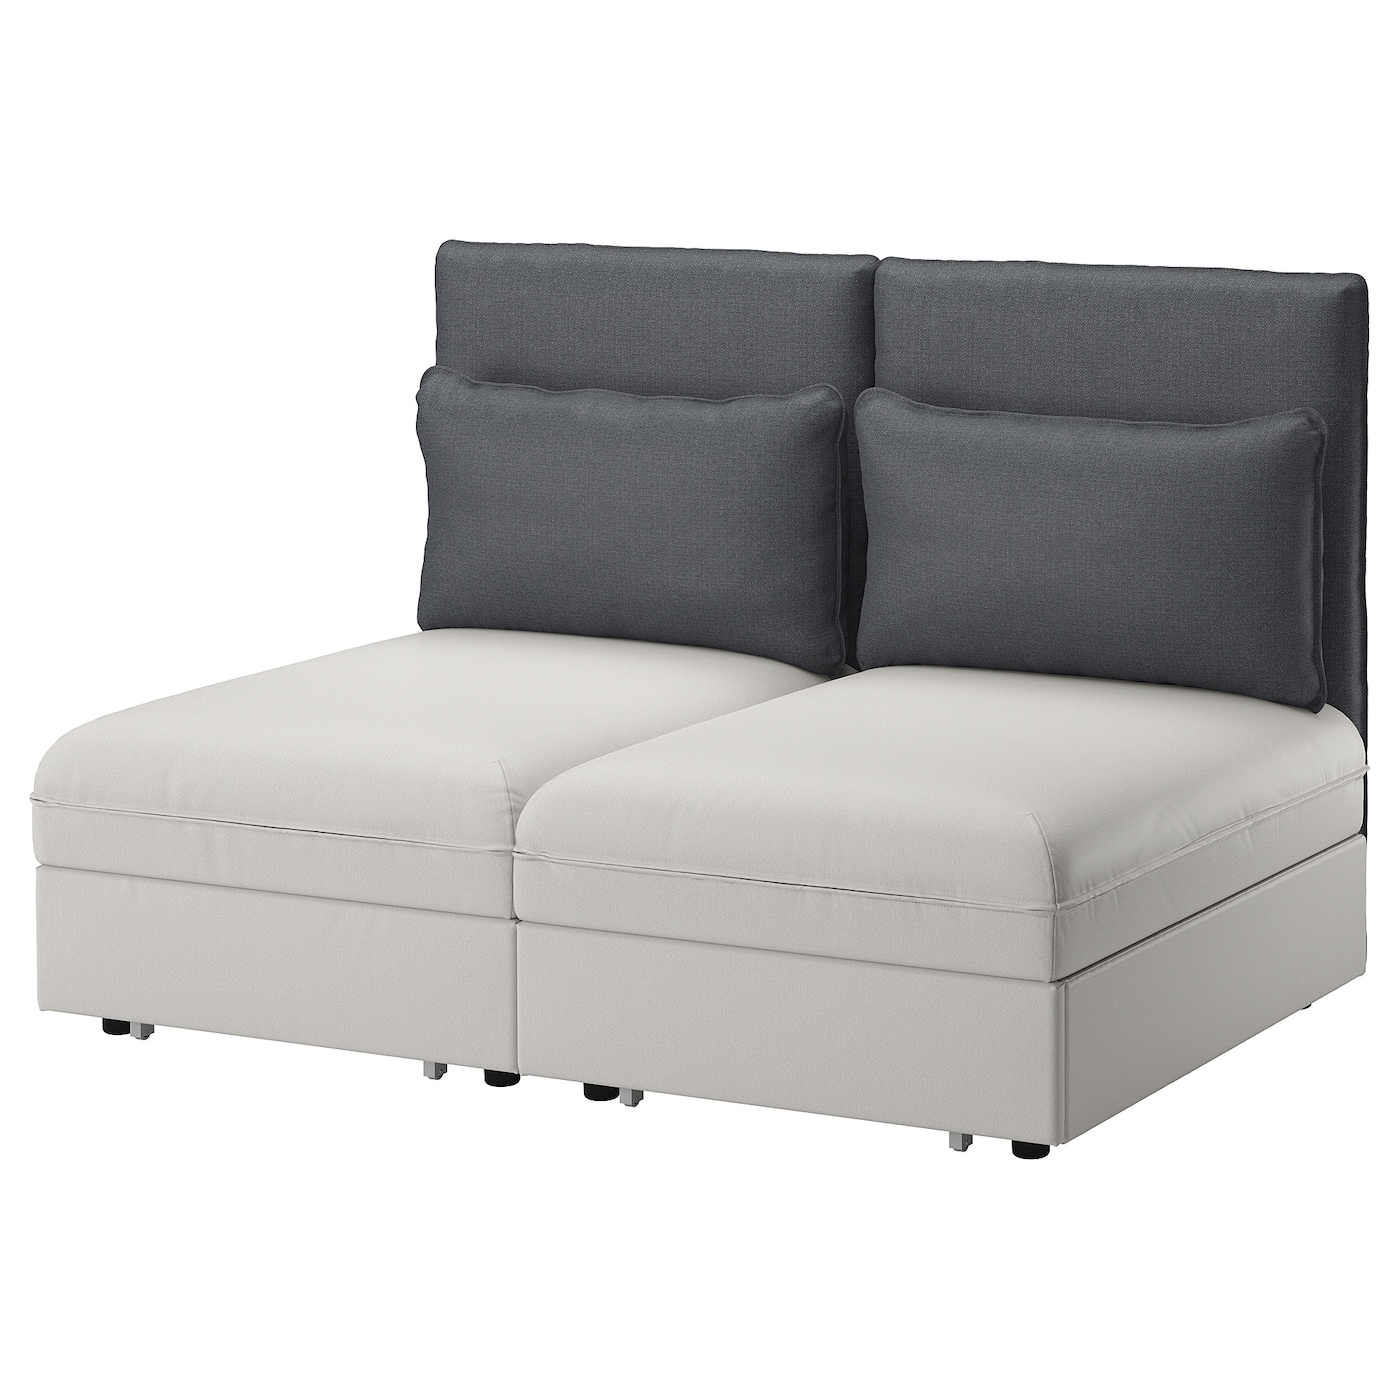 sofa beds ikea ireland dublin. Black Bedroom Furniture Sets. Home Design Ideas